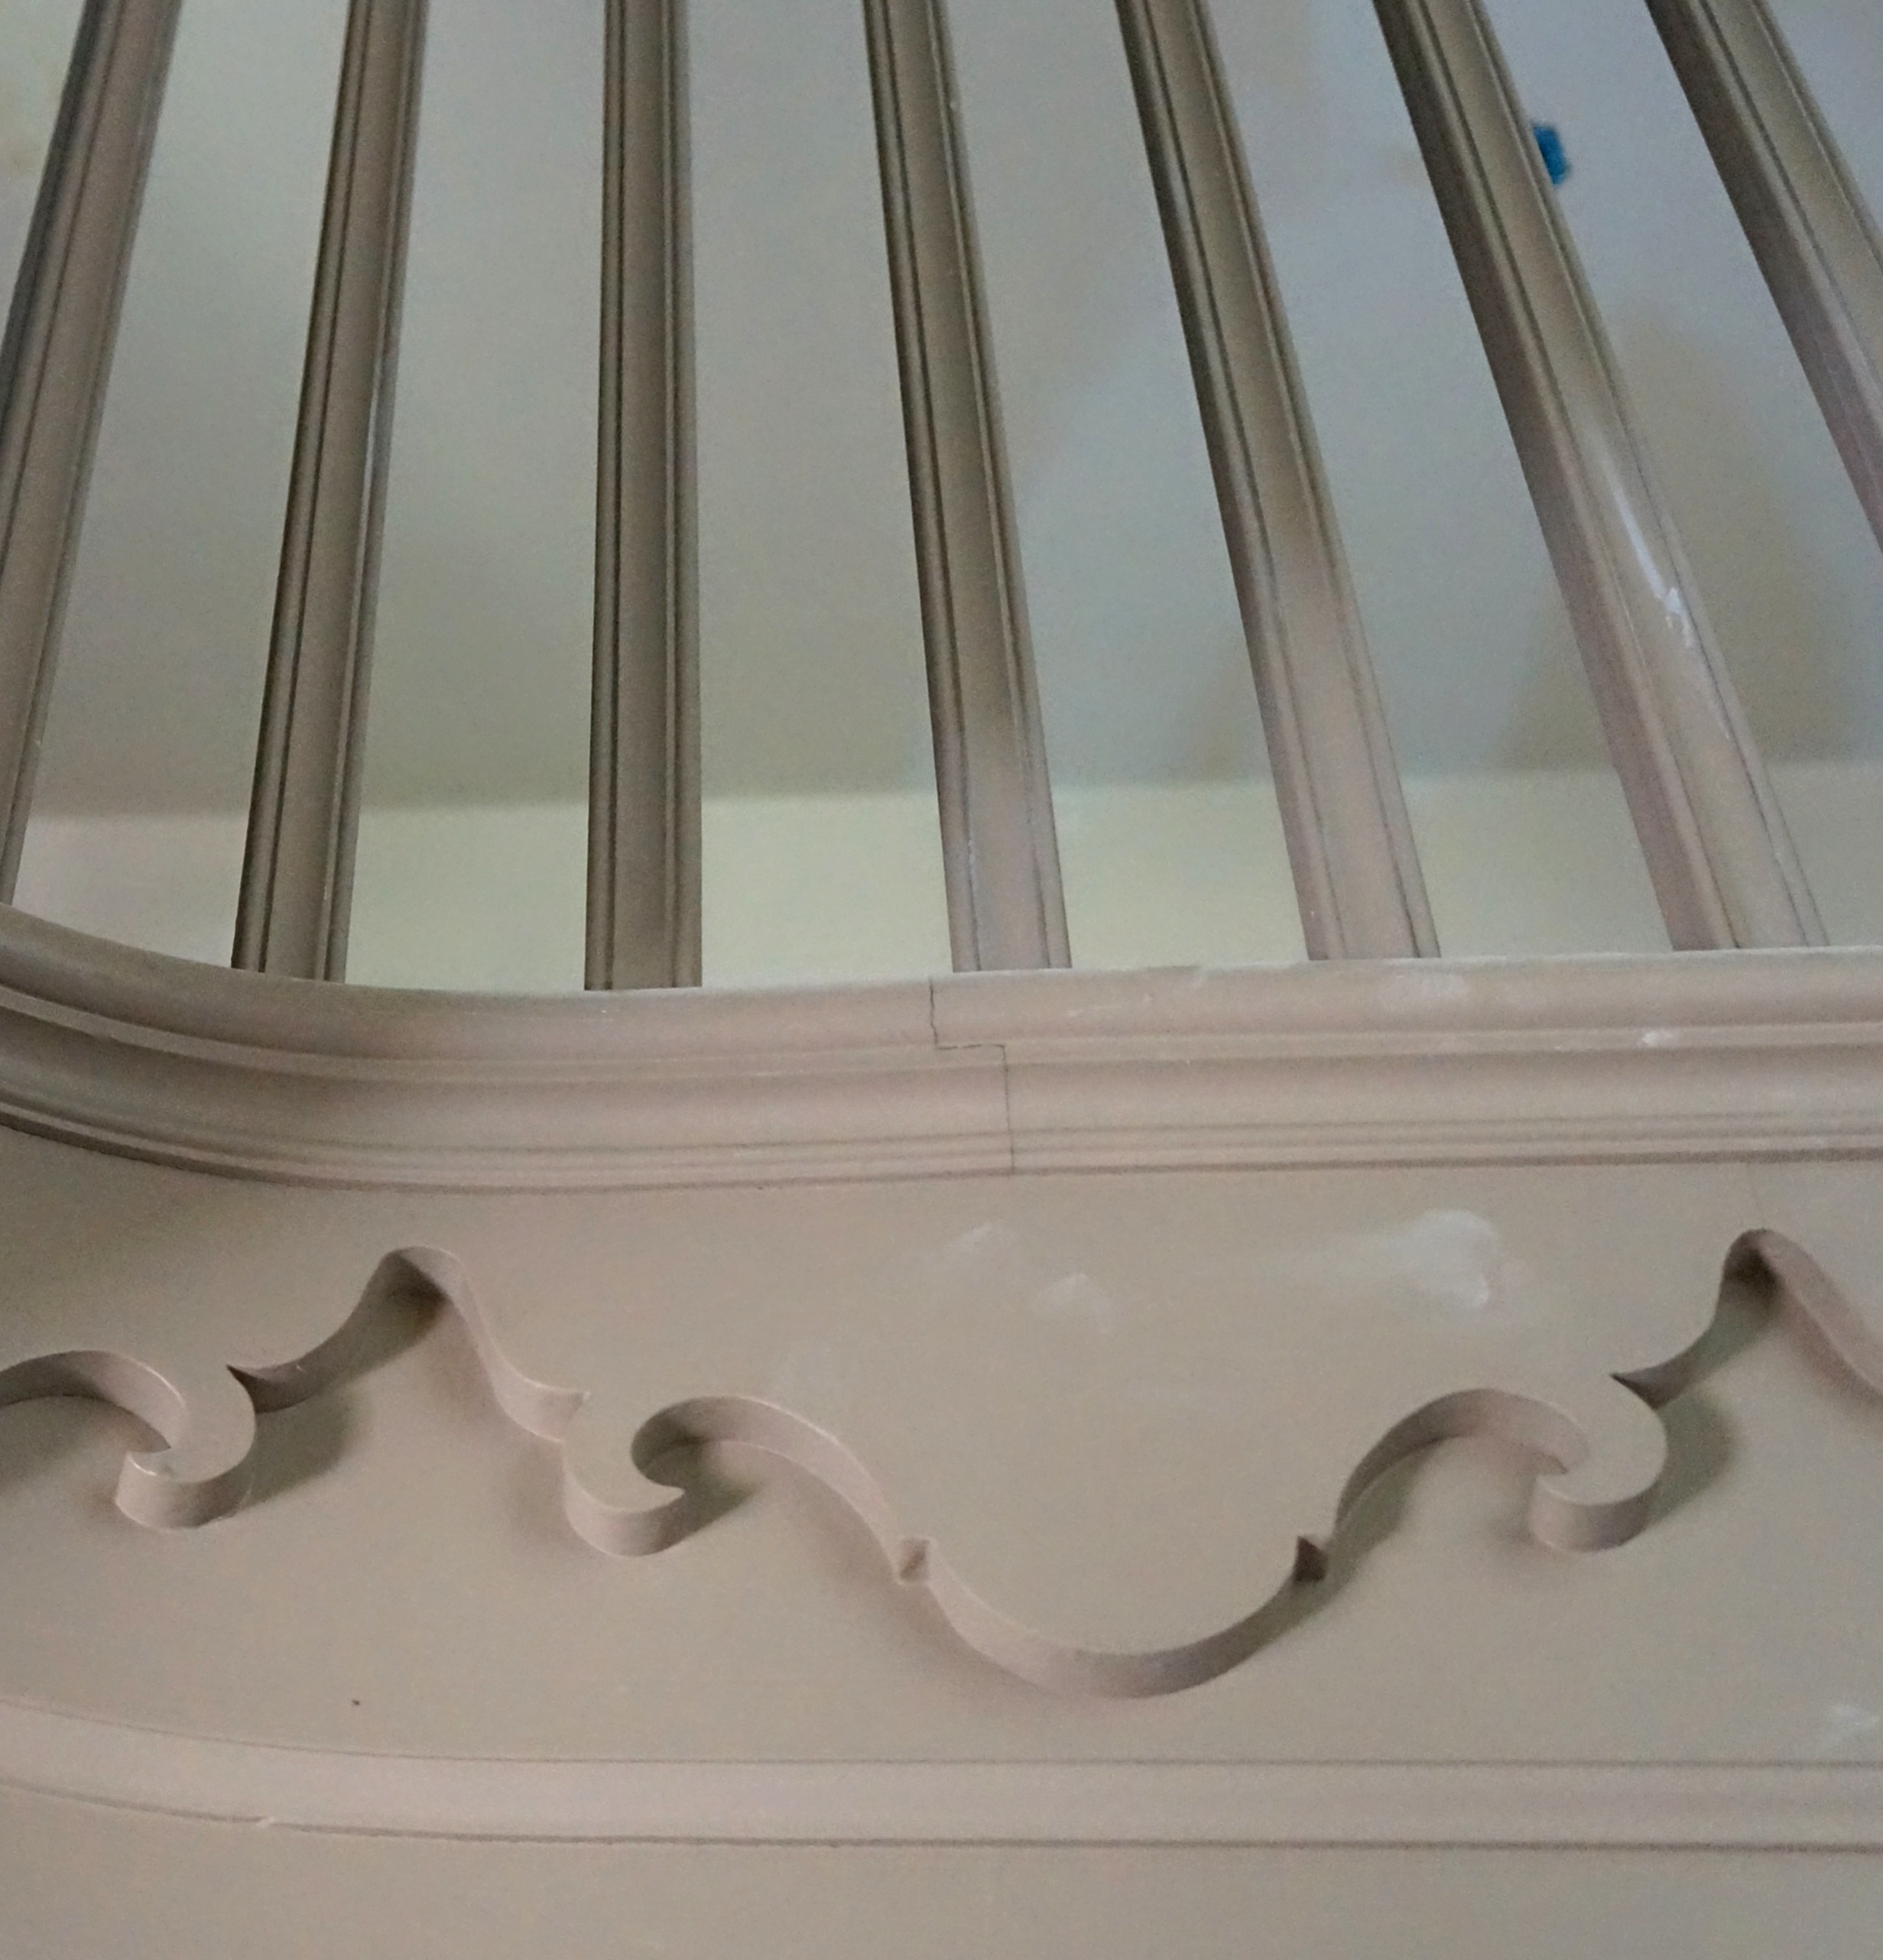 origstairdetail-part-2-melding-old-new-addition-remodel-malvern.jpg